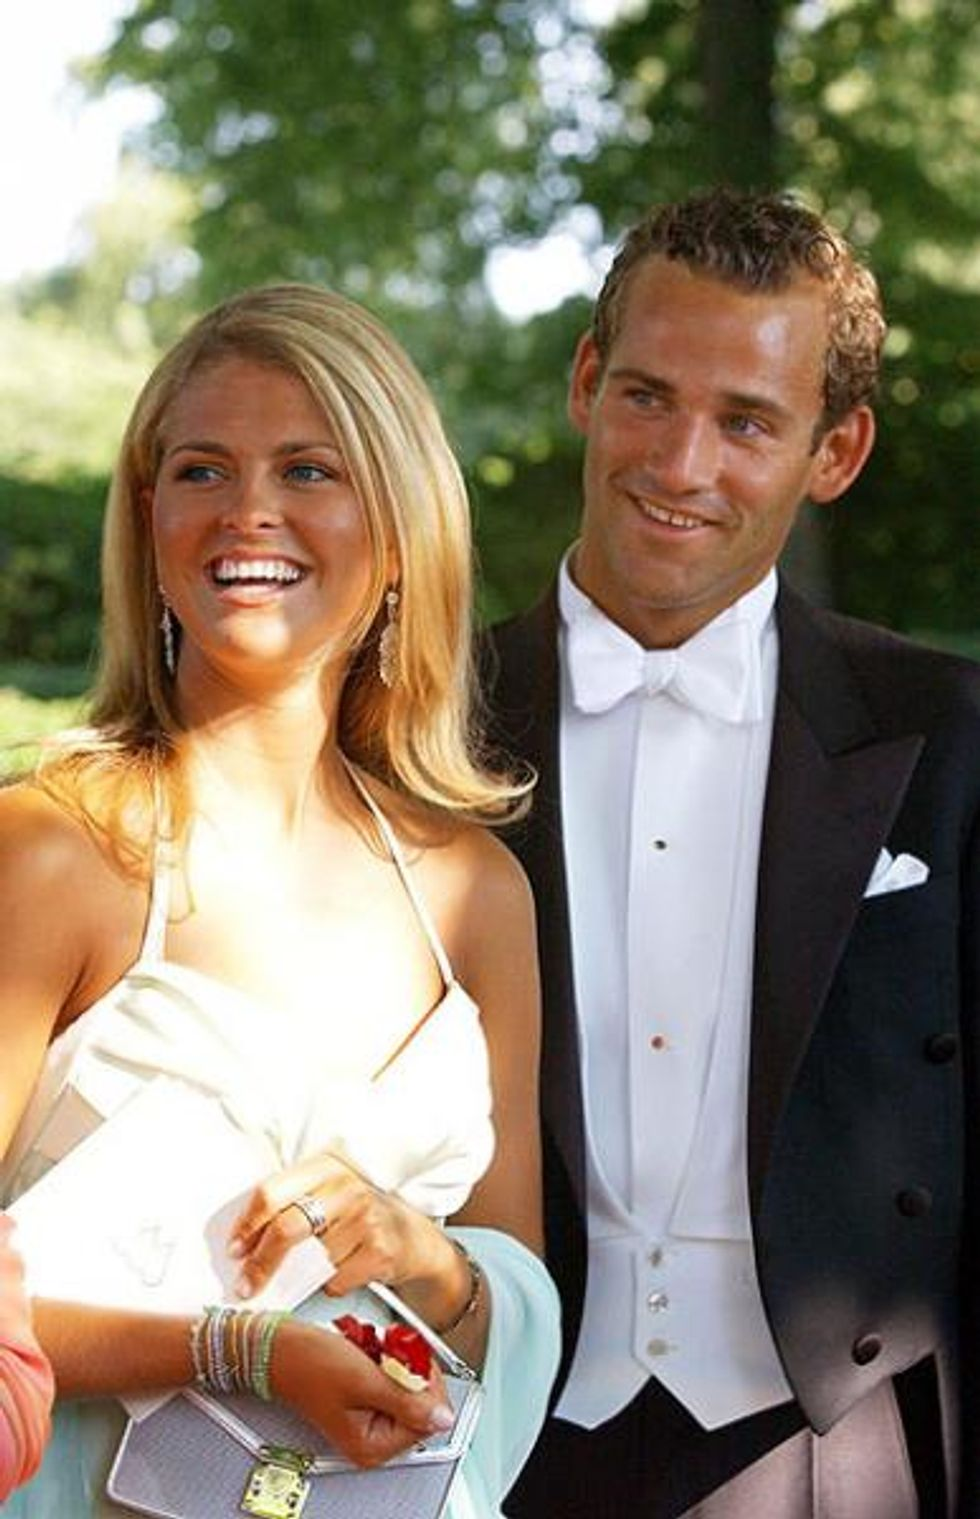 These Swedish Princesses Can't Stop Getting Engaged